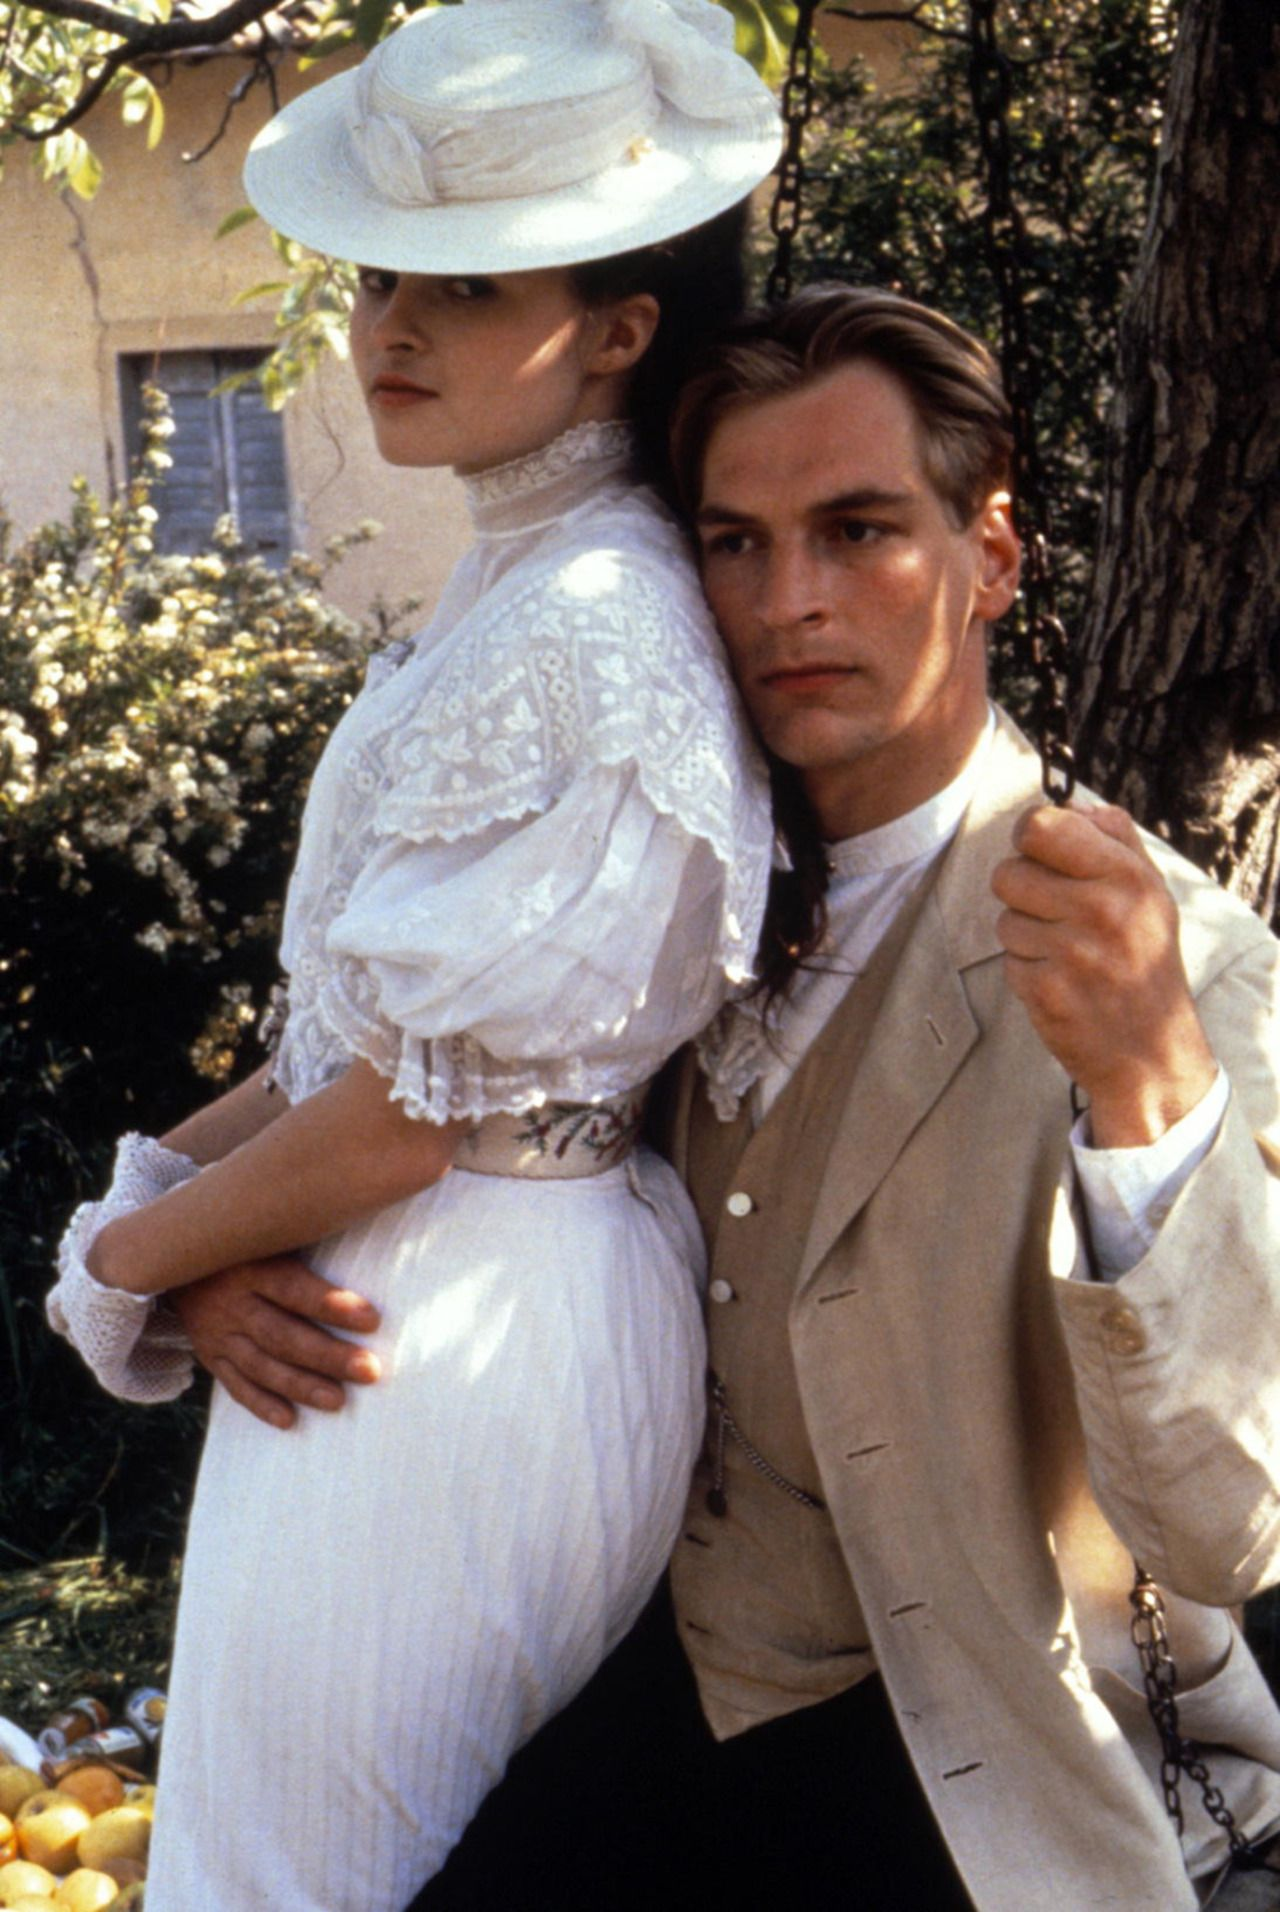 One Period Drama Production Still Per Day Helena Bonham Carter And Julian Sands In A Room Helena Bonham Carter Hollywood Costume Julian Sands